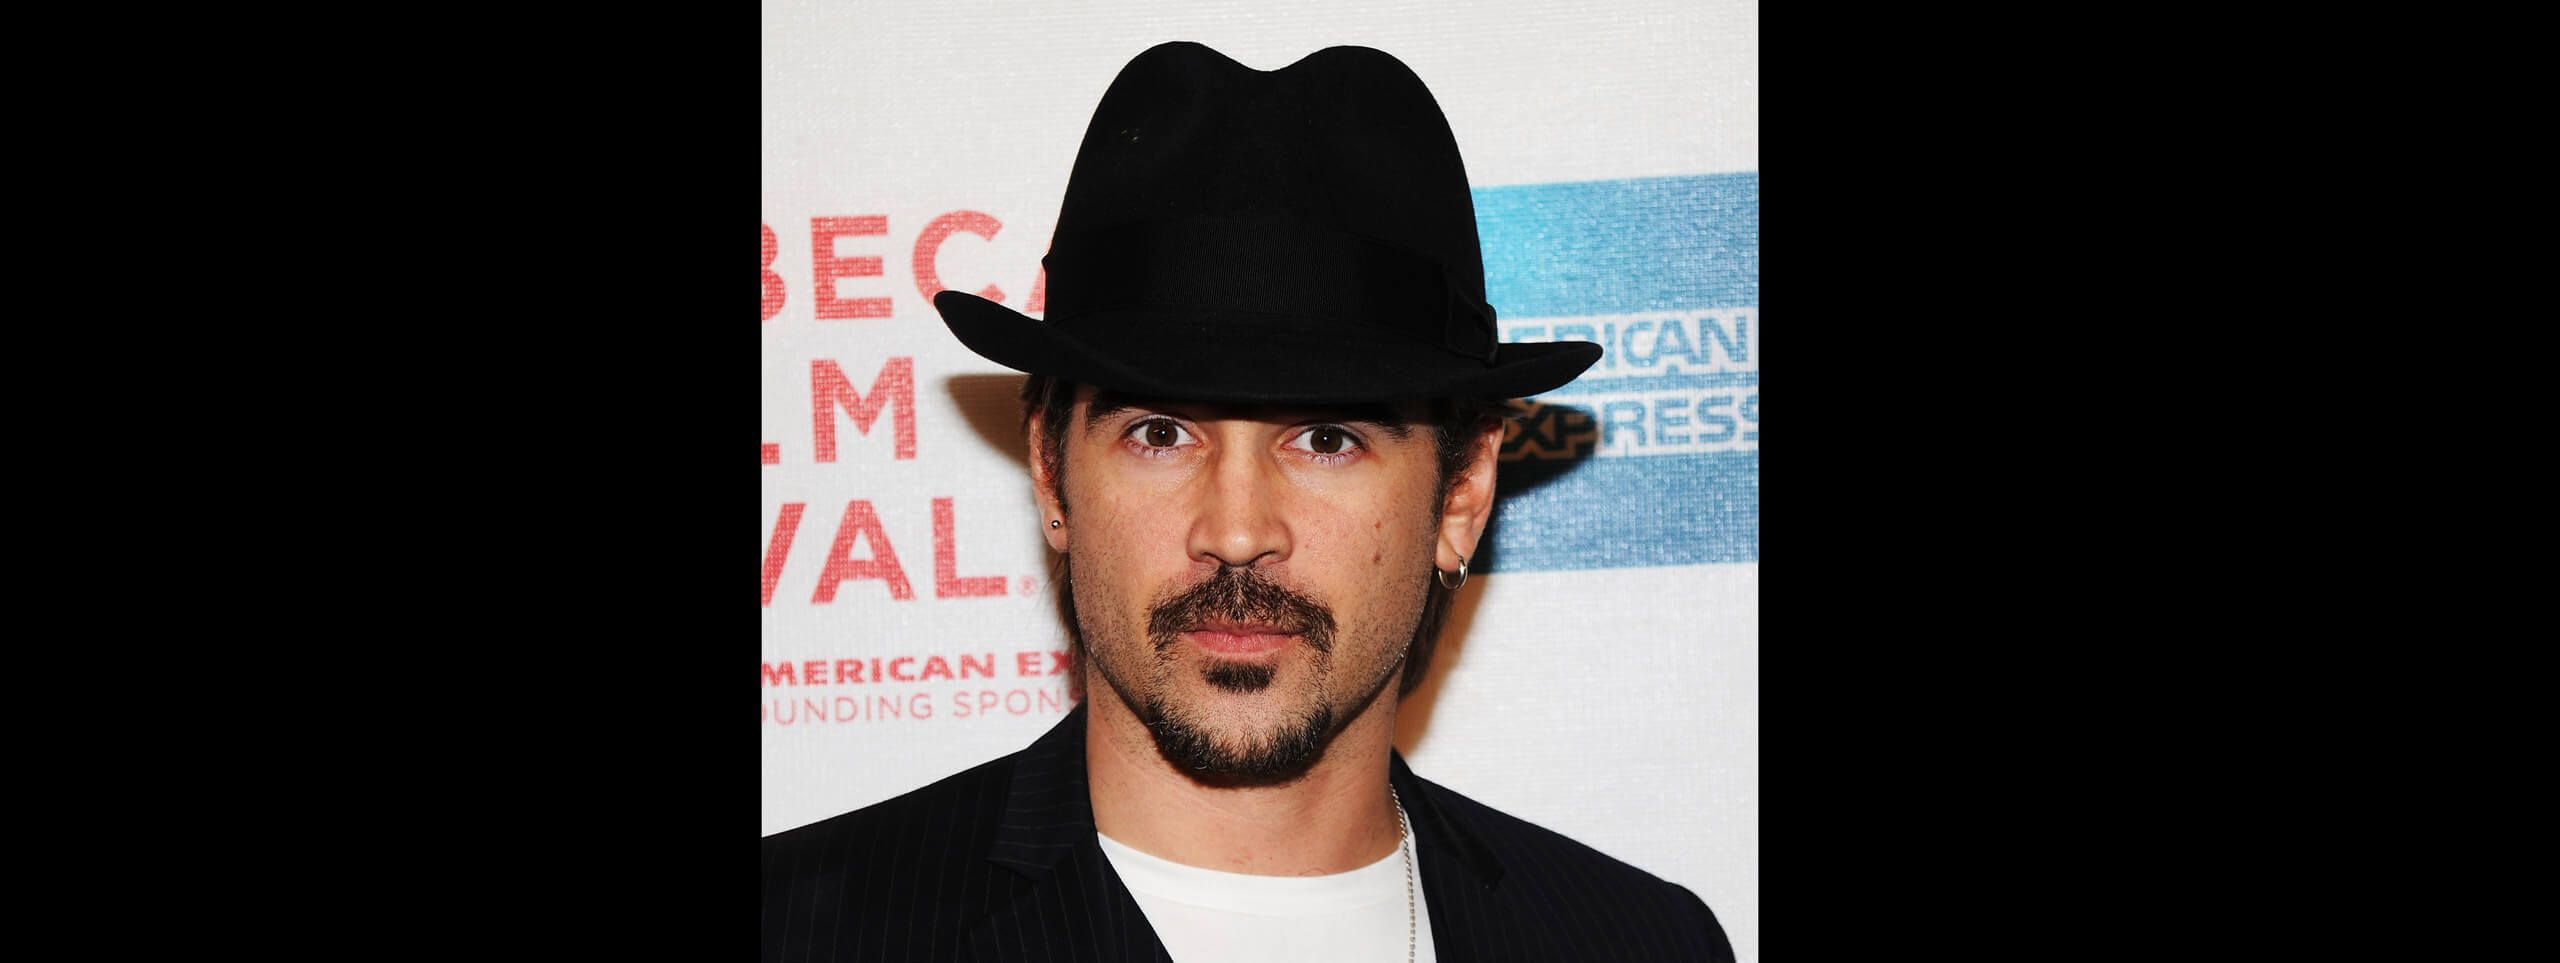 Colin Farrell wearing a hat